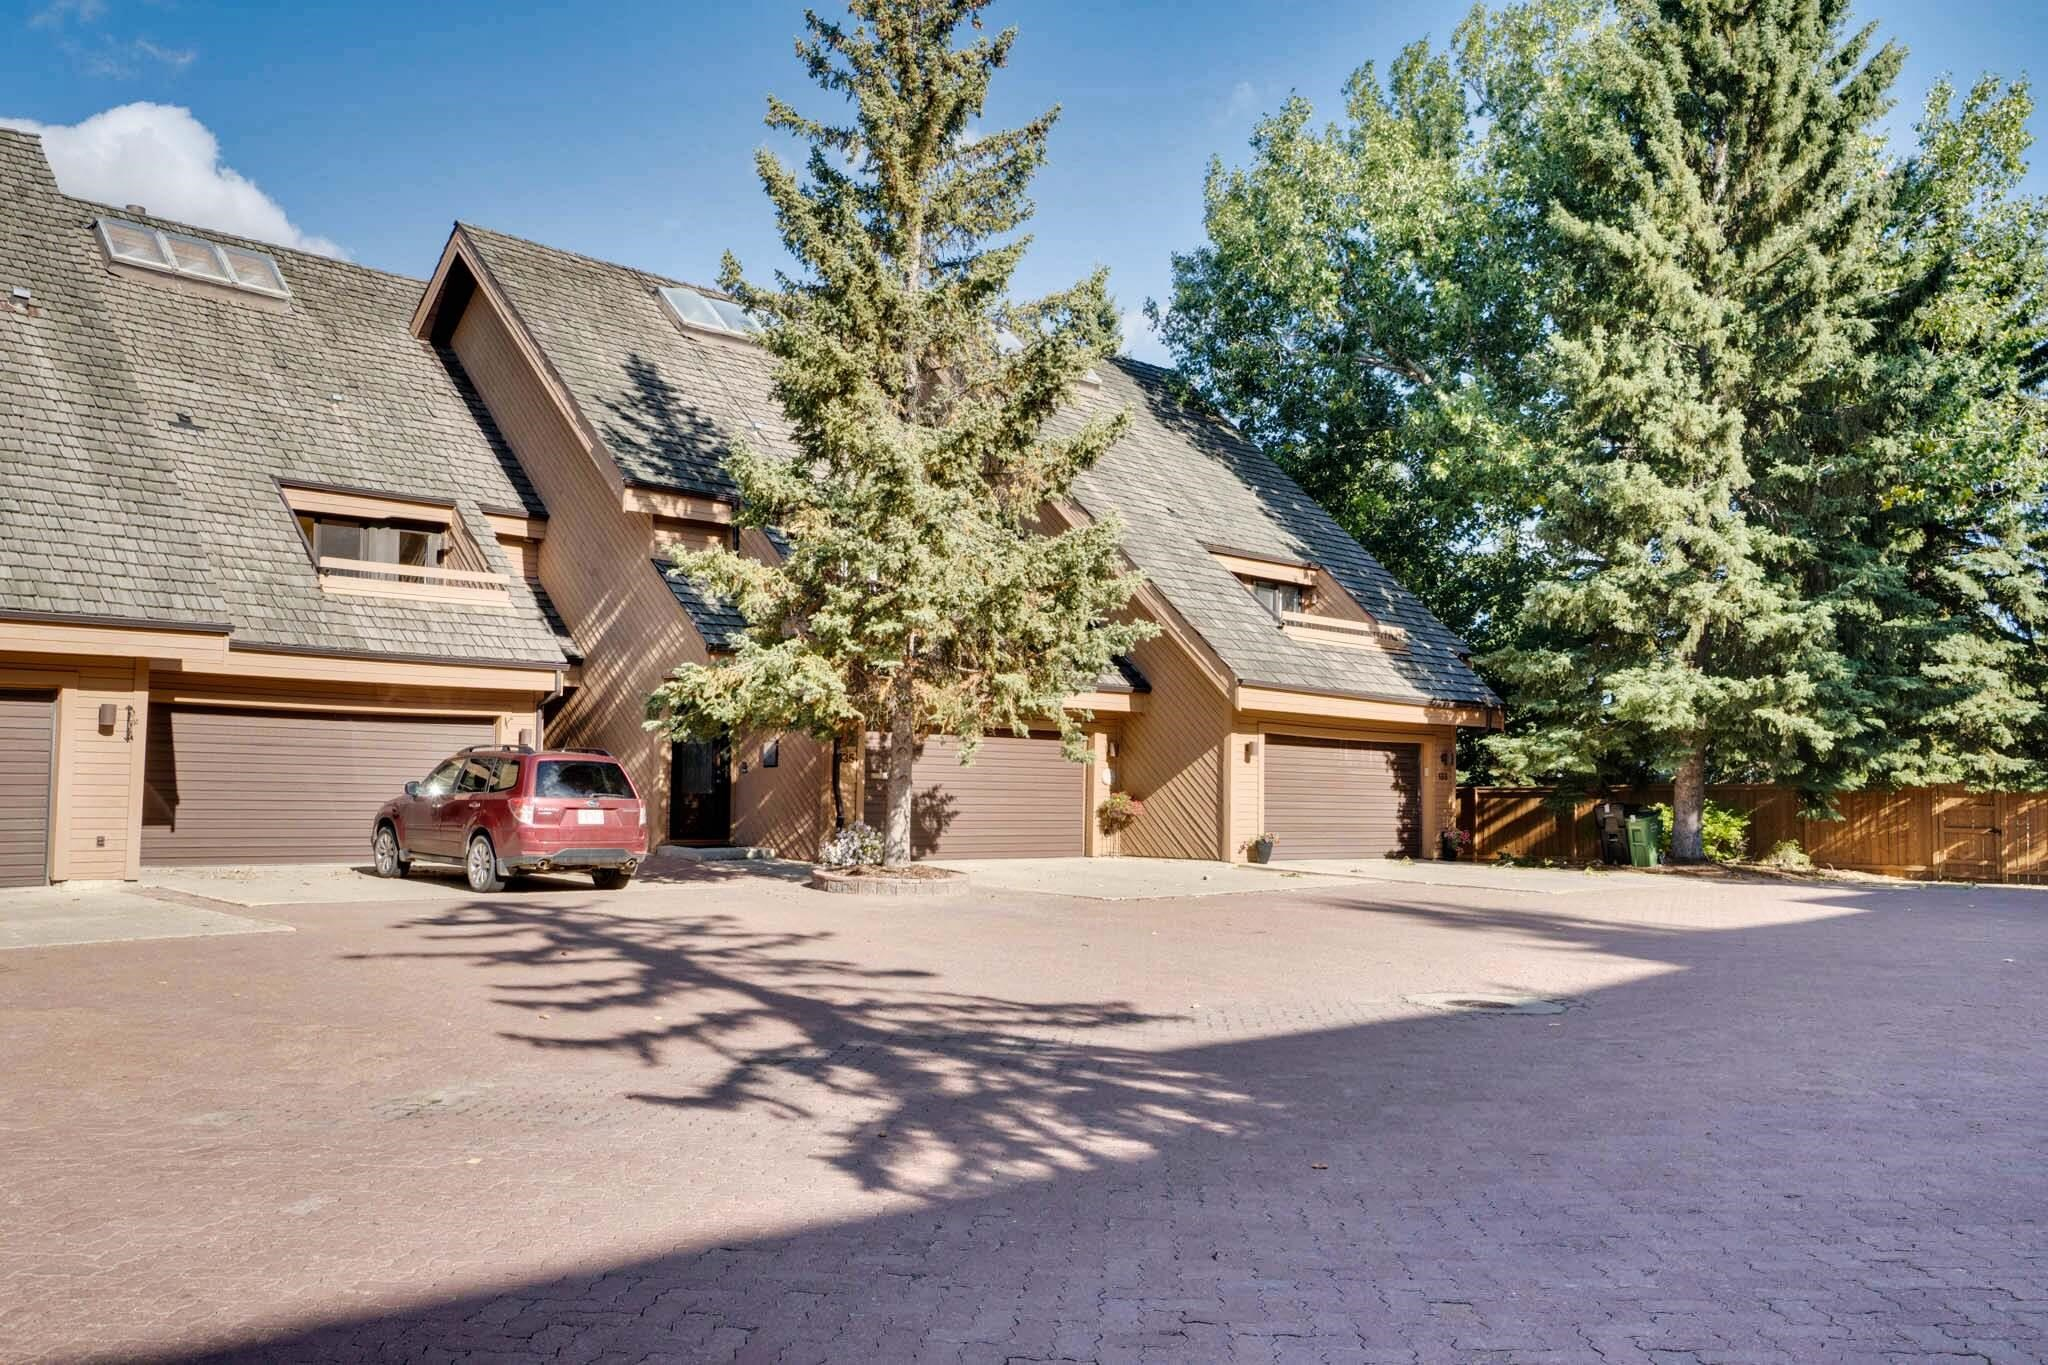 Executive 3 storey townhouse in the prestigious community of Westridge!  Just a few steps away from the Wolf Willow Ravine trail system this unique condo is impressive! Renovated main floor with a stunning Kitchen with upgraded stainless-steel appliances, quartz counters, cabinets right to the ceiling, stone backsplash, soft-closing drawers, & tons of storage with an oversized pantry.  Relax in an inviting living room with a warming gas fp featuring river rock facing.  Gleaming hardwood flrs flow throughout the main living space & there is a convenient 2-pc bath.  Second floor features an expansive Master Suite with a spa like ensuite and huge walk in closet. There is a sitting area, a 2nd inviting fireplace.  This level also offers 2 additional bdrms, with access to terraces. The by multi-use upper loft is impressive with vaulted cedar showcasing skylights, a plumed web bar & another balcony to appreciate.  Larger deck & private yard.